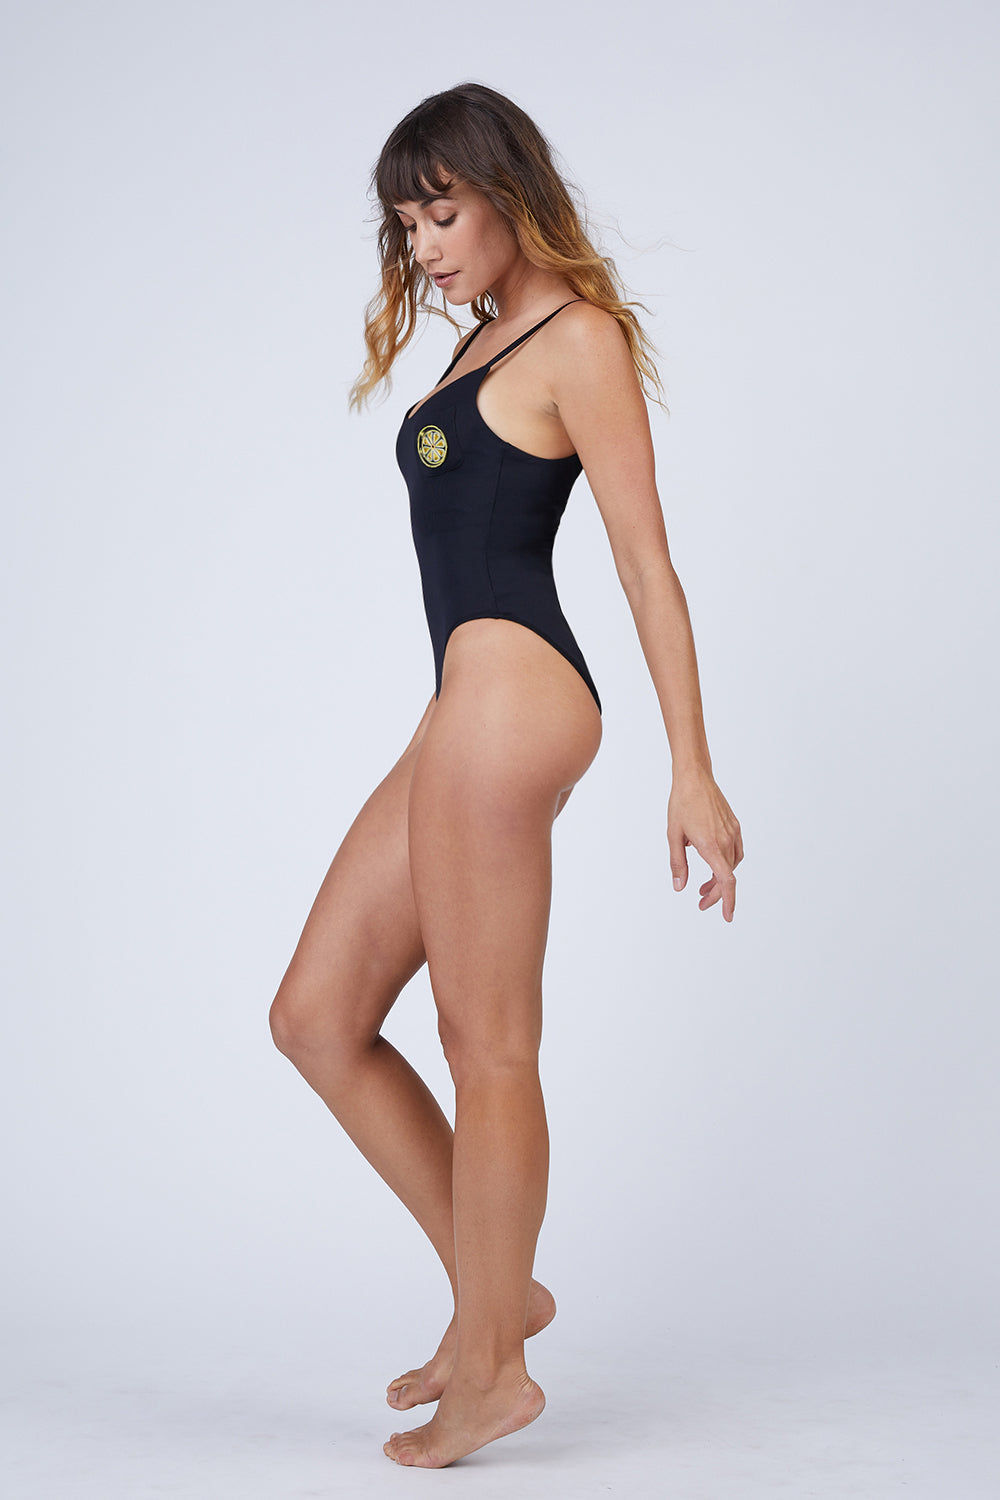 AMAIO SWIM Iris Scooped Back One Piece Swimsuit - Black One Piece | Black|Iris Scooped Back One Piece Swimsuit - Features: thin strip, high leg cut, one piece